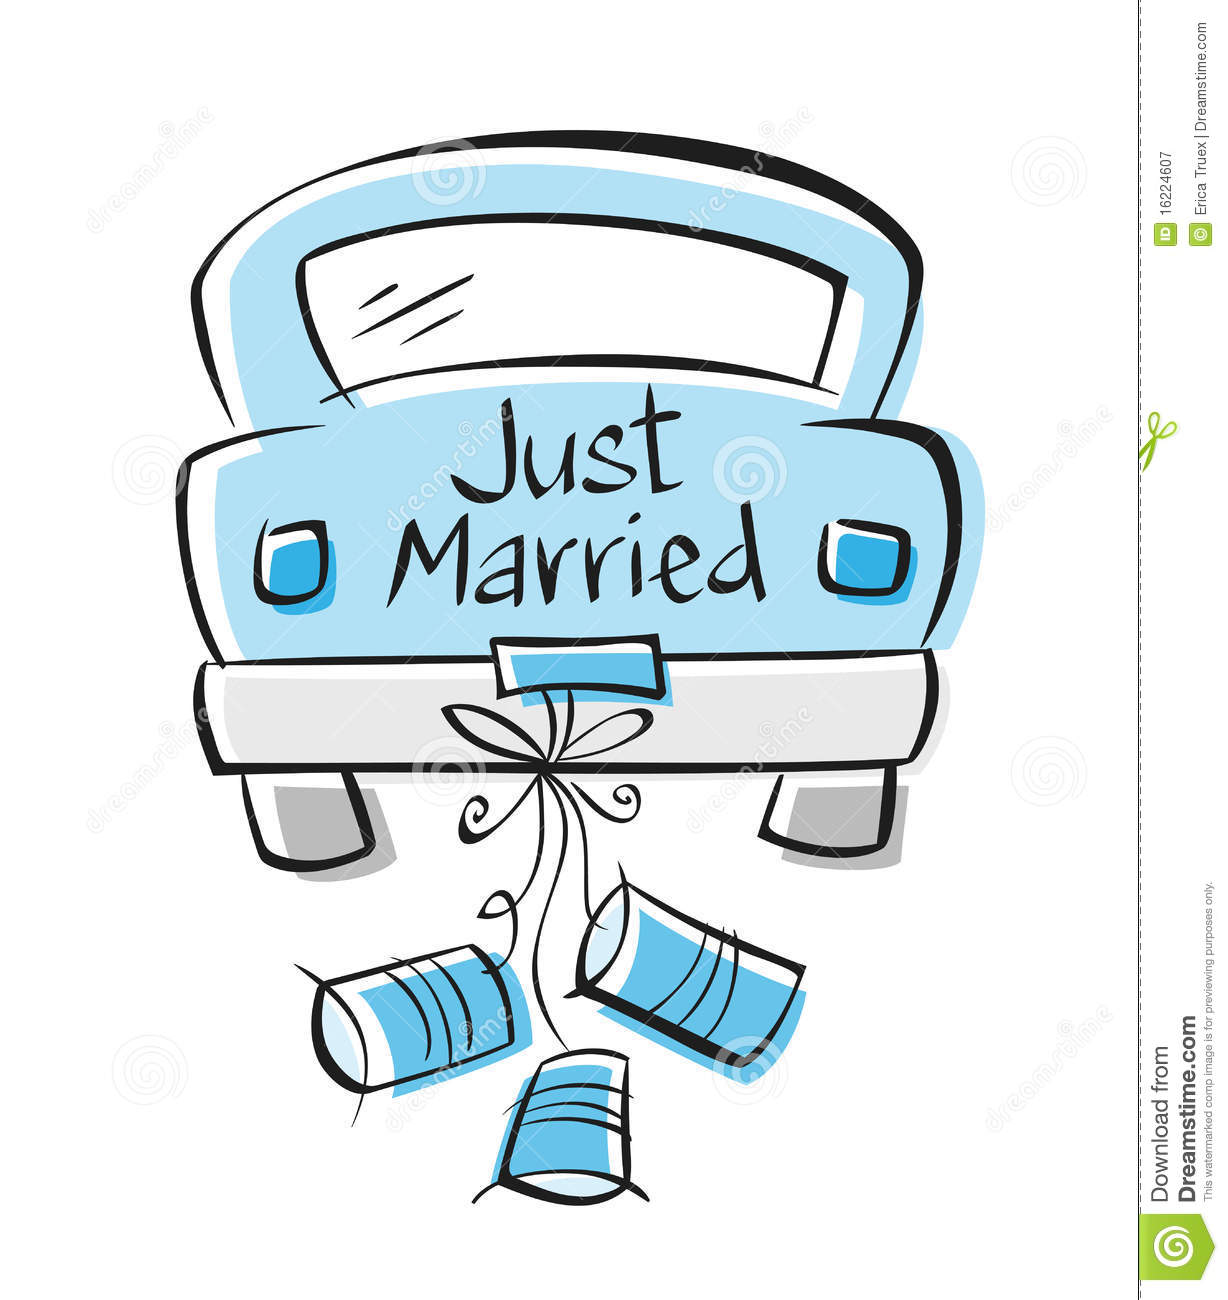 just married auto clipart 6 » clipart station